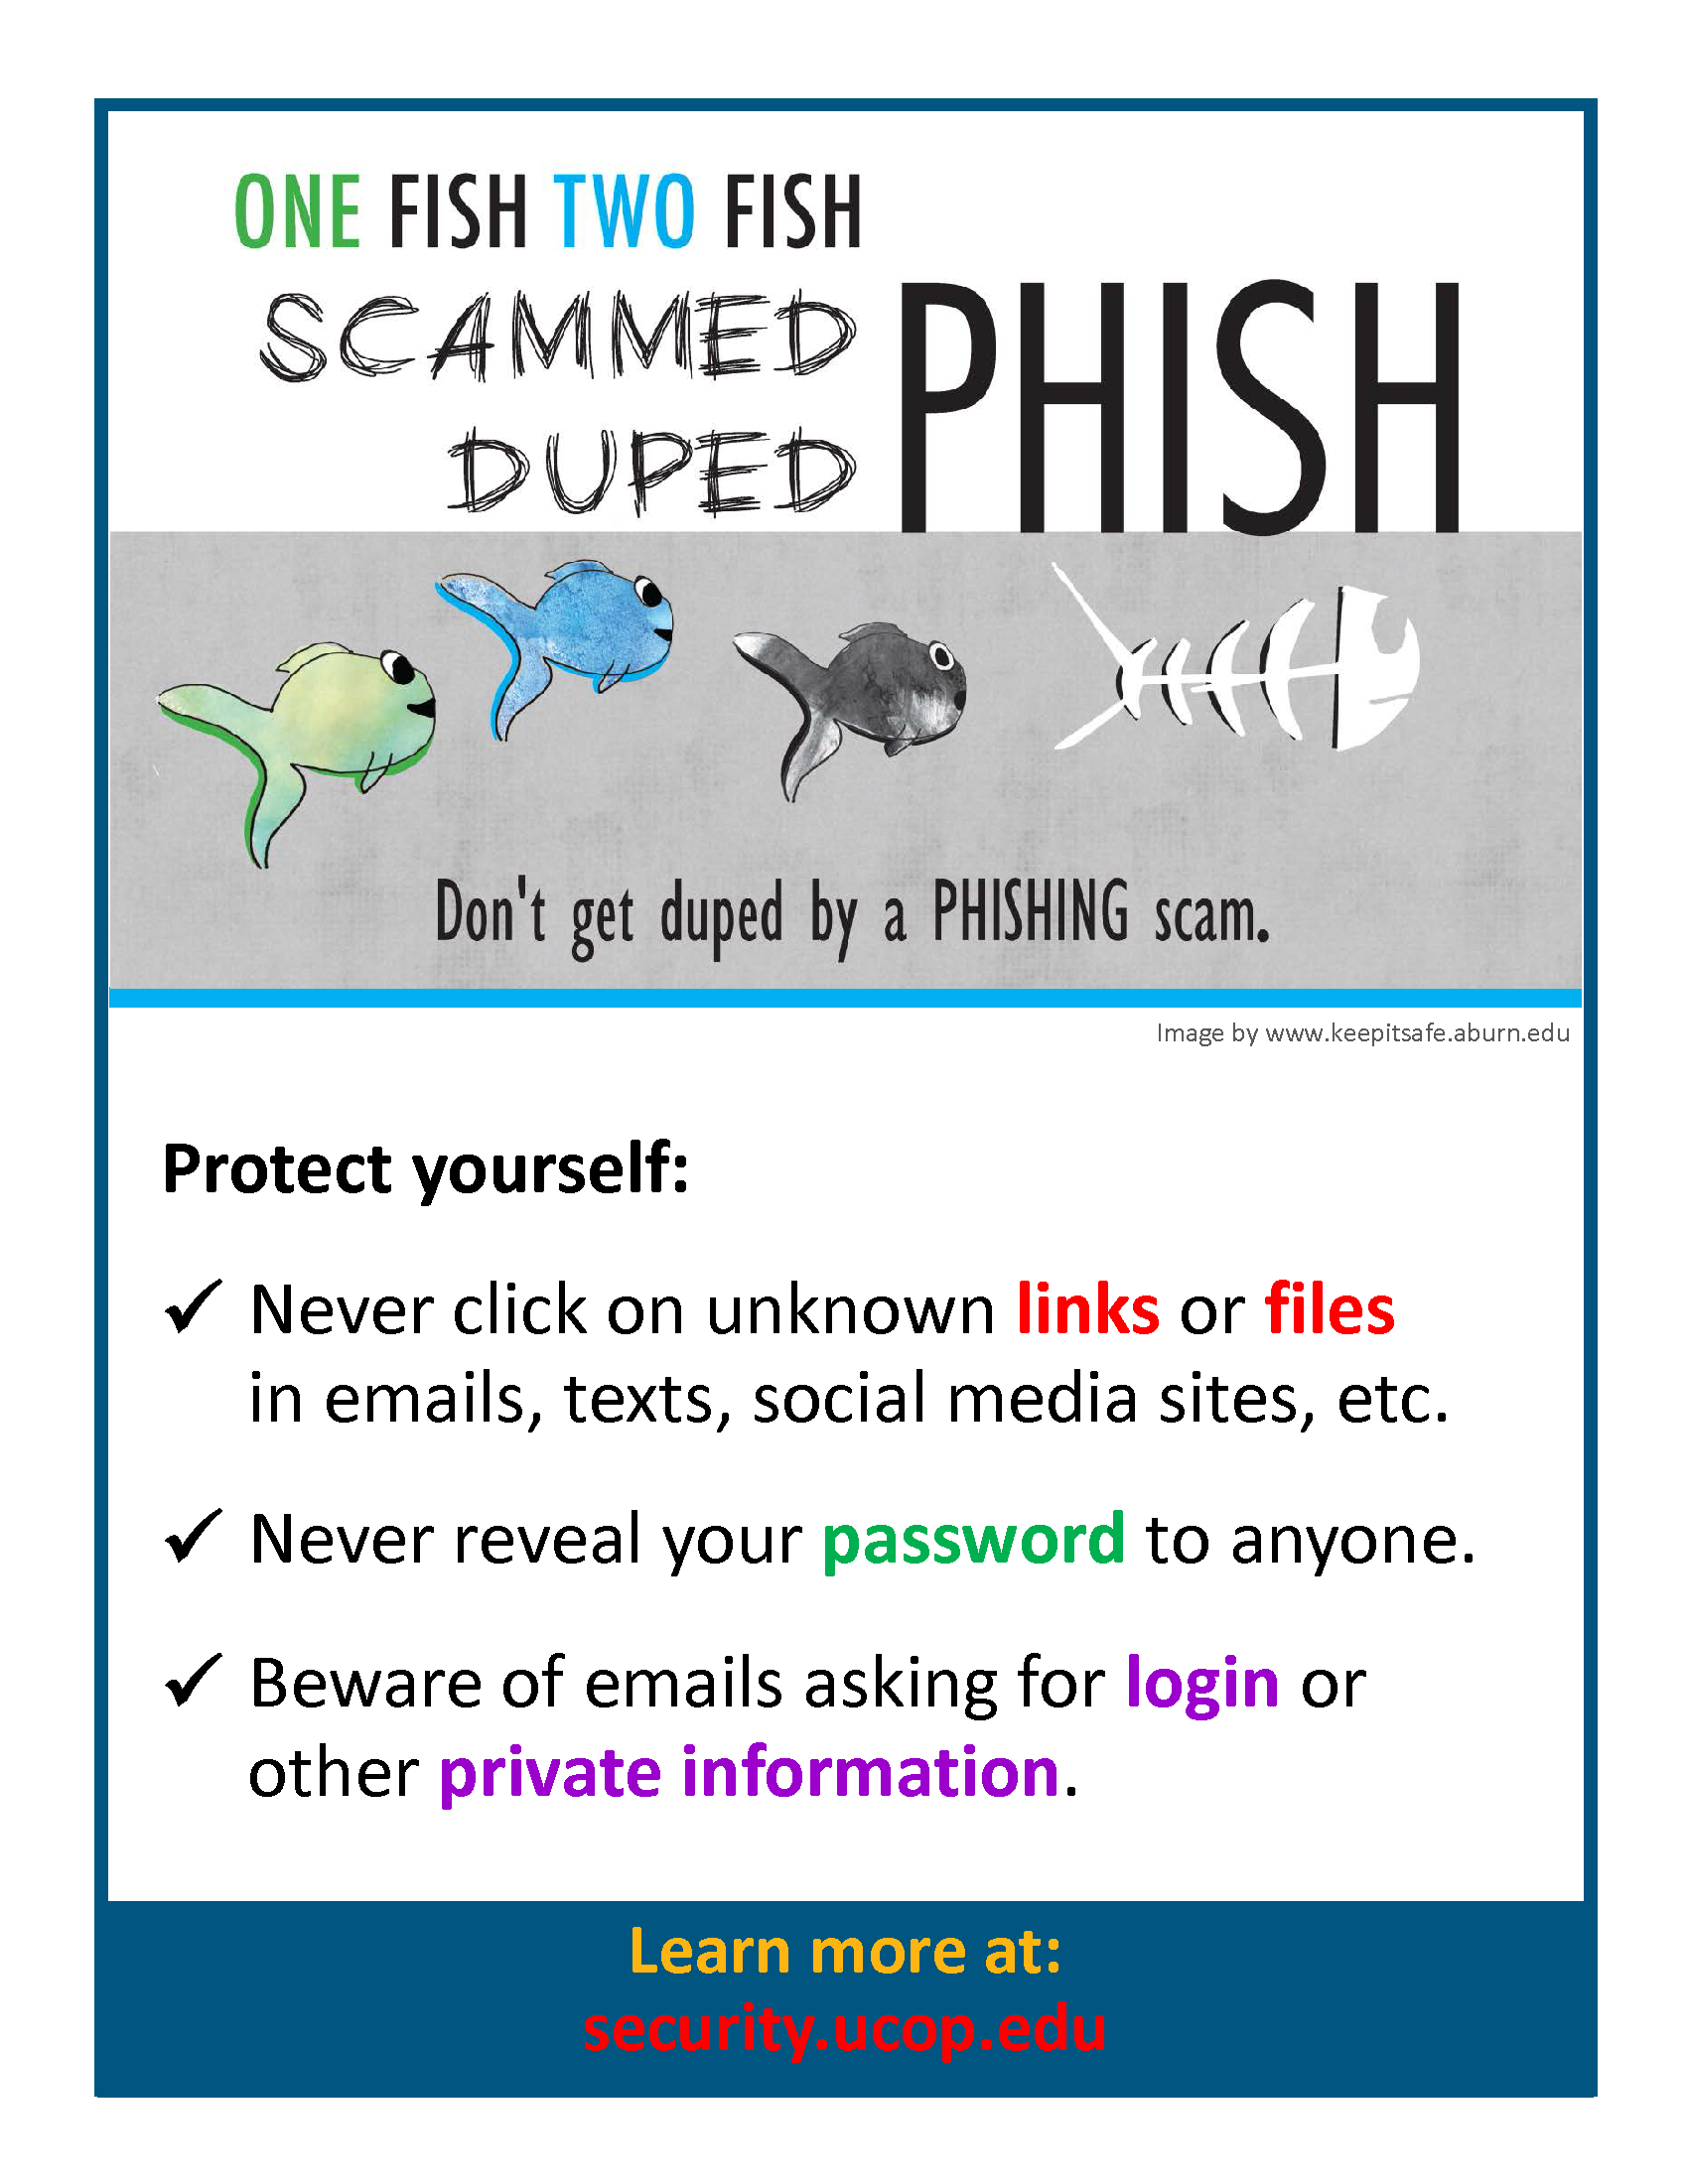 Poster: Don't get duped by a phishing scam. Protect yourself: Never click on unknown links or attachments. Never reveal your password. Beware of email asking for login or other private information.